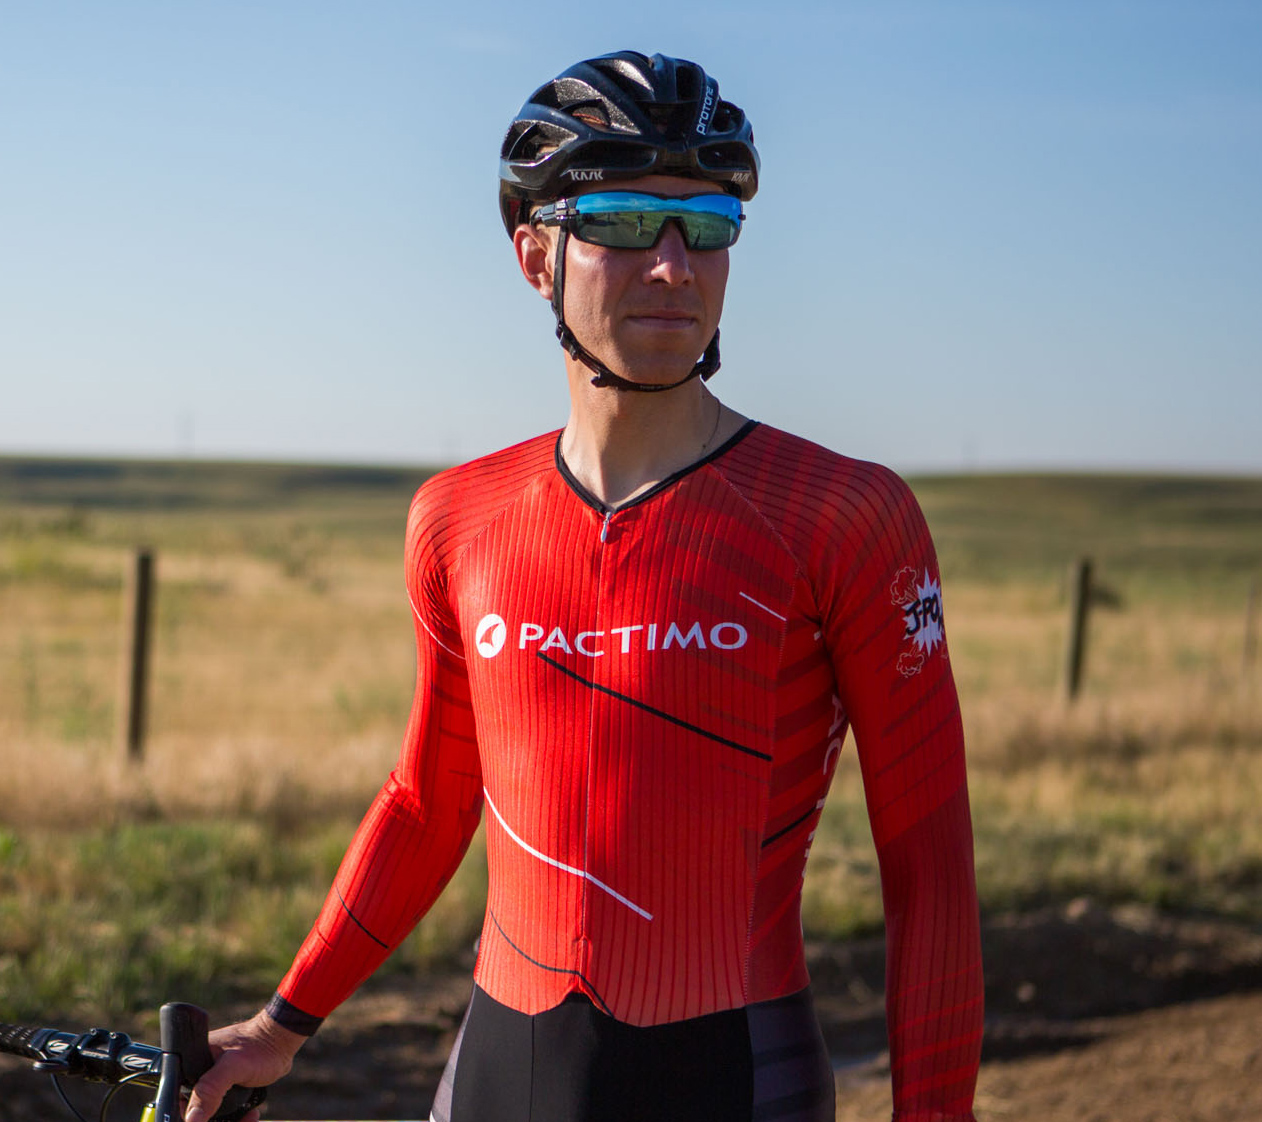 Pactimo to sponsor Jeremy Powers